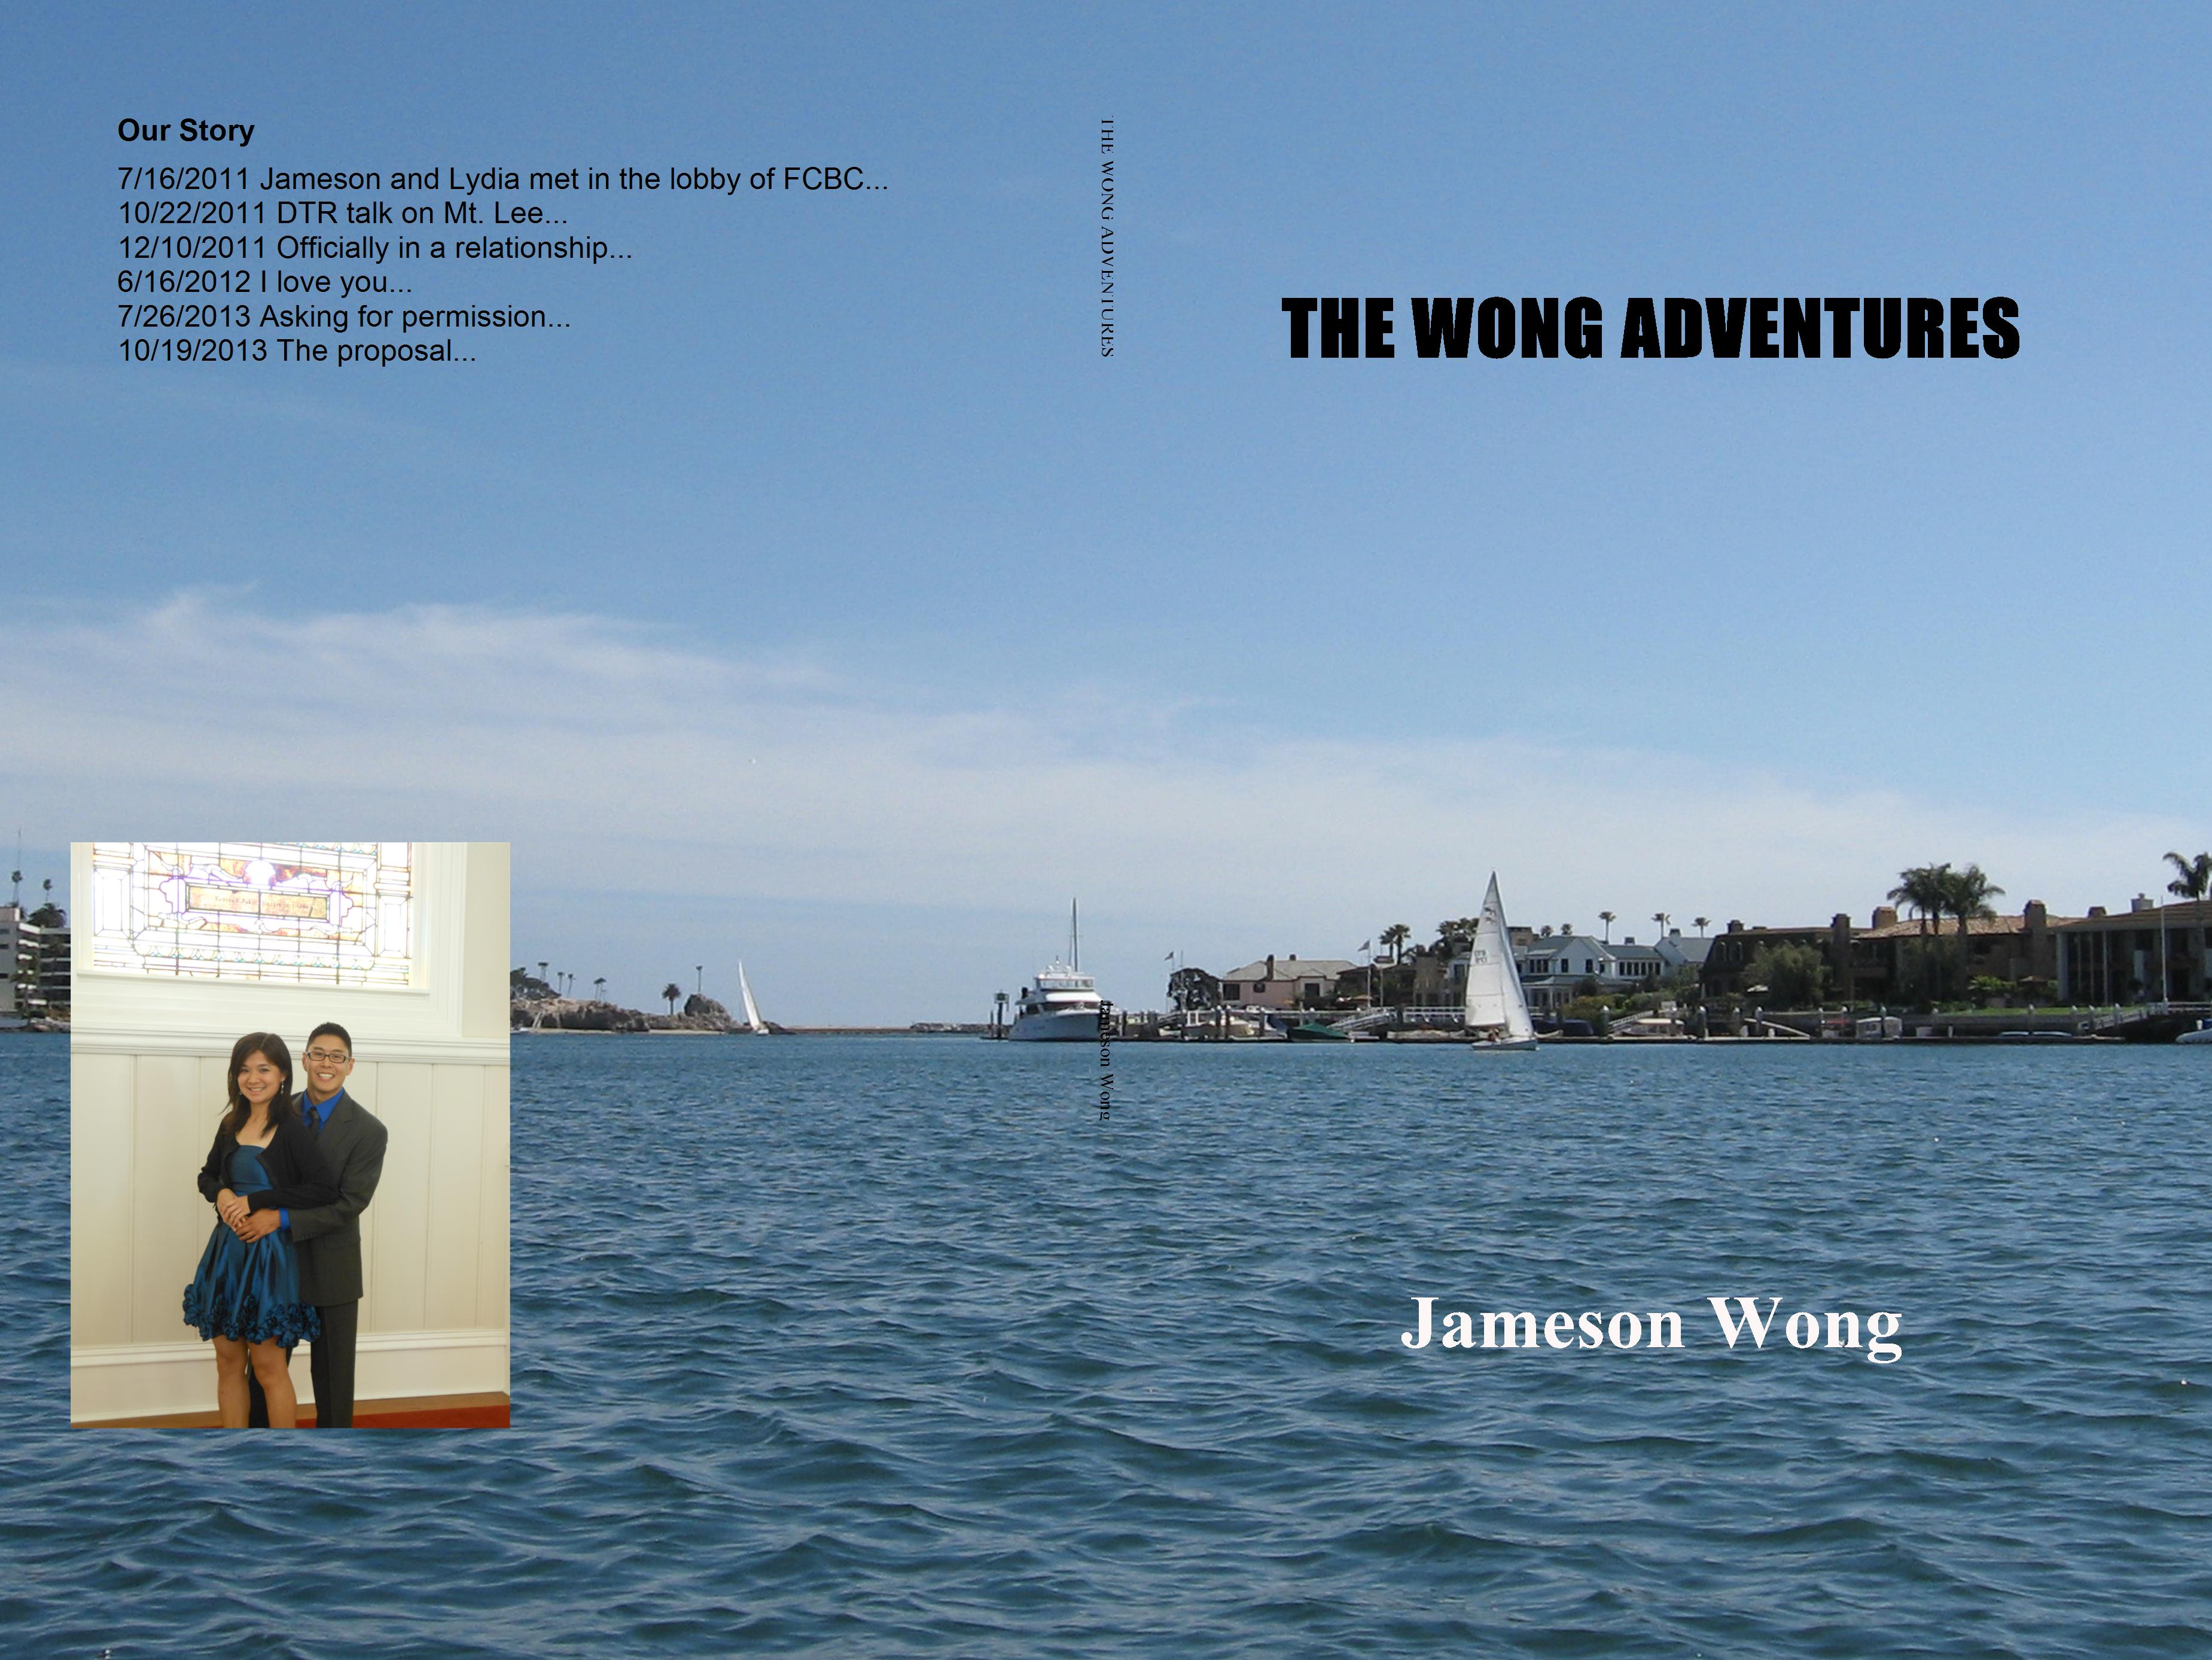 THE WONG ADVENTURES cover image